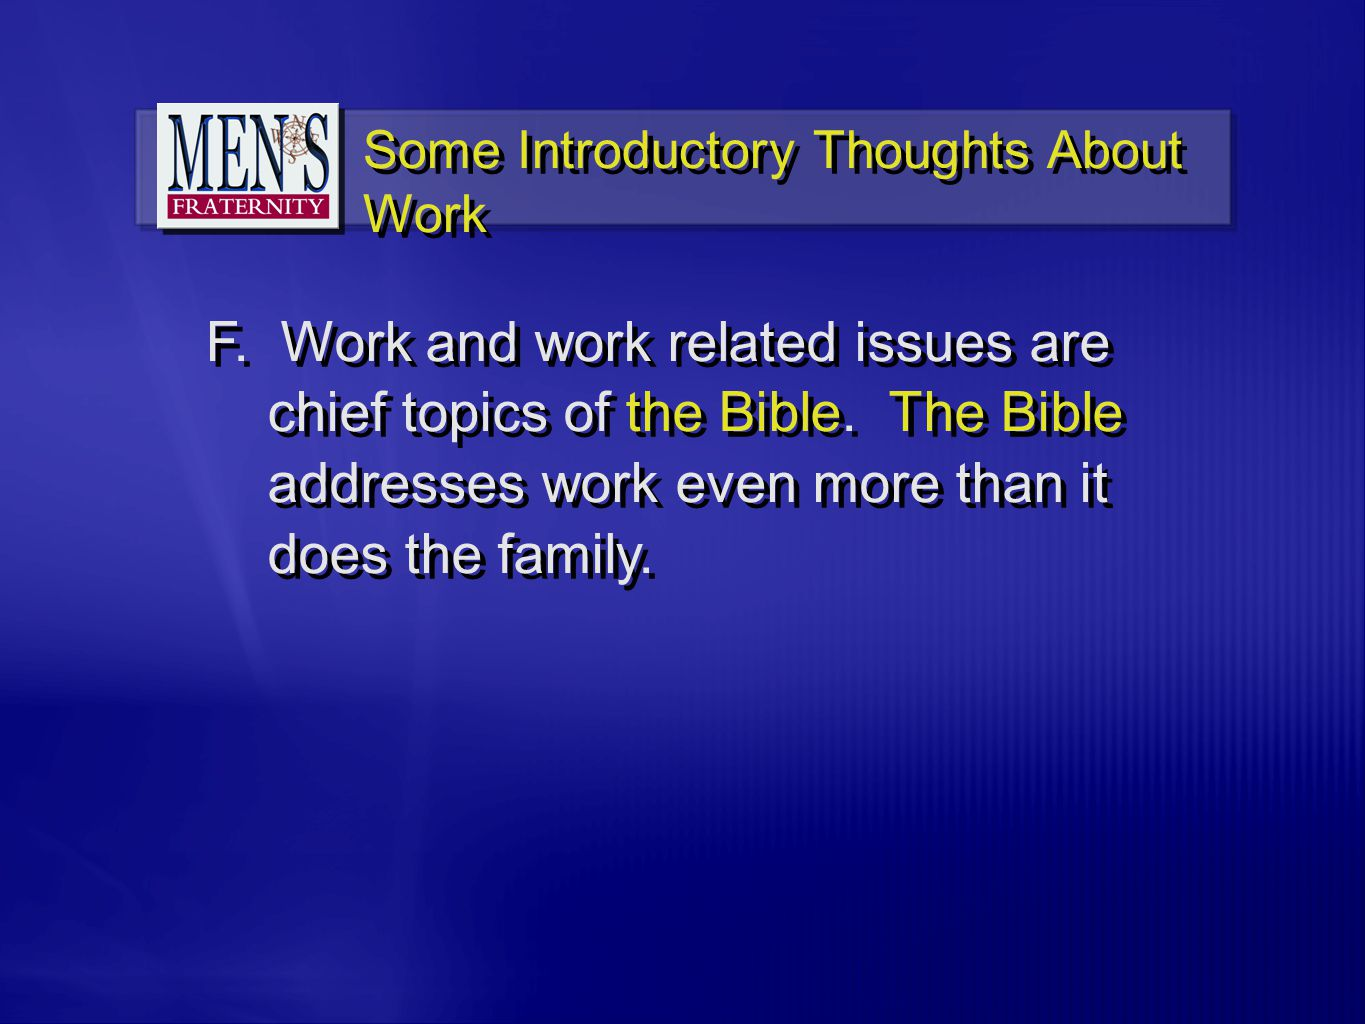 F. Work and work related issues are chief topics of the Bible.